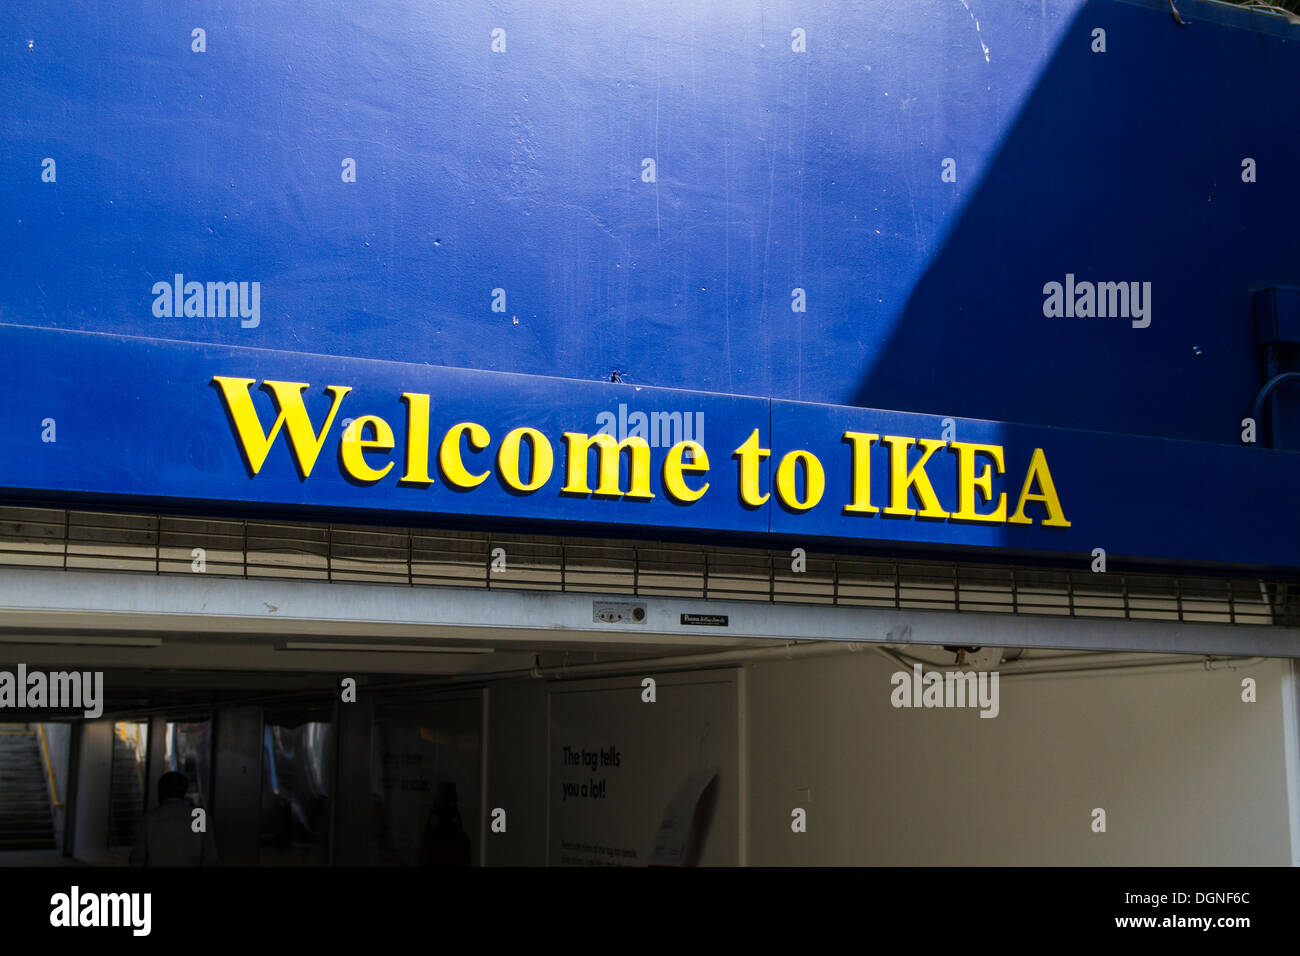 Ikea Burbank Address Ikea Store In Burbank In Stock Photos & Ikea Store In